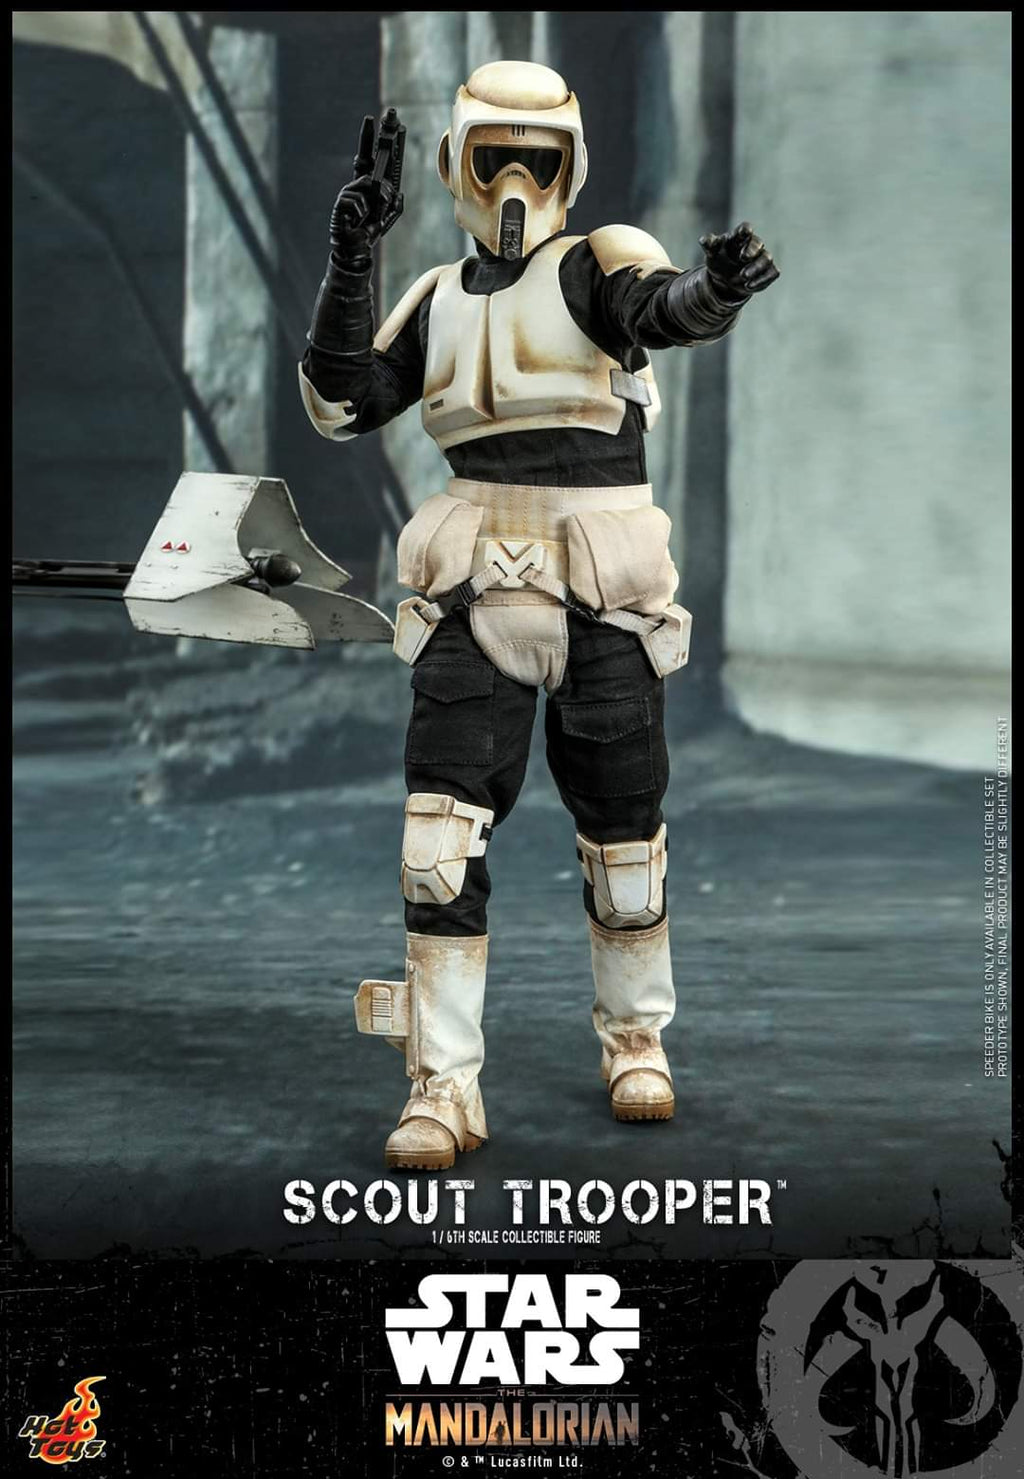 The Mandalorian: Scout Trooper